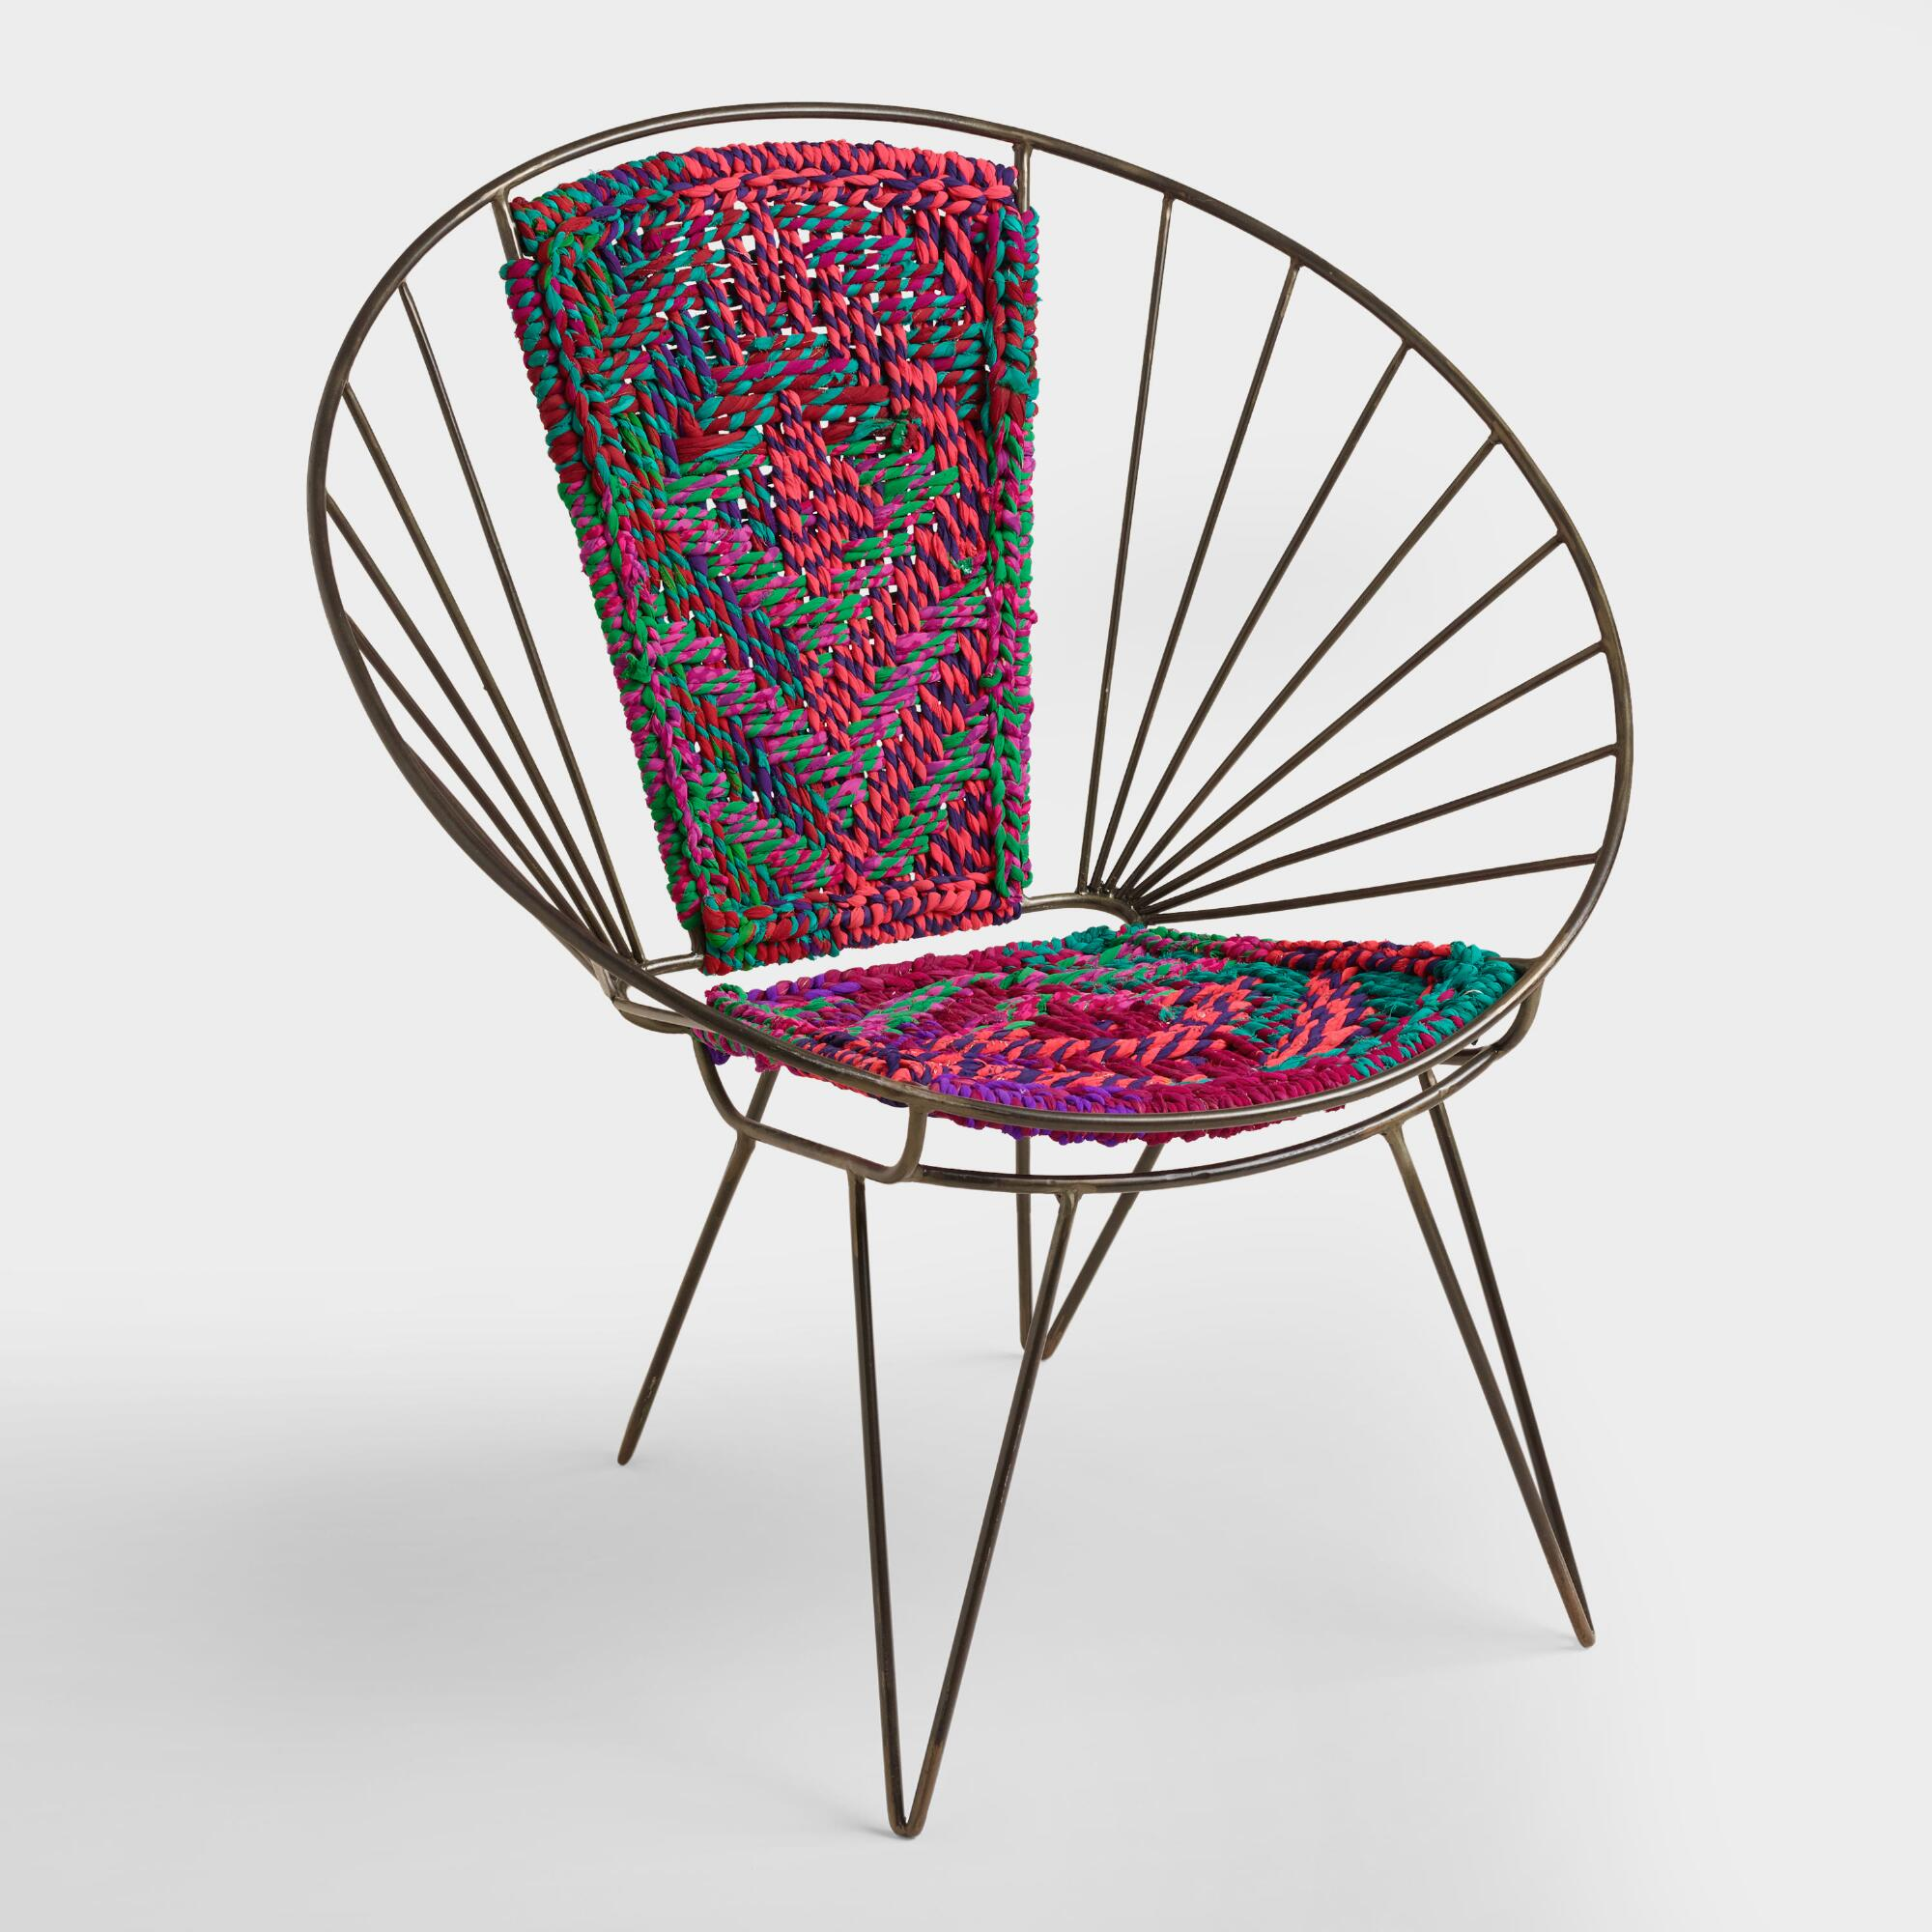 Metal Woven Chindi Chair. Home Accents and Interior Decorating Ideas   World Market